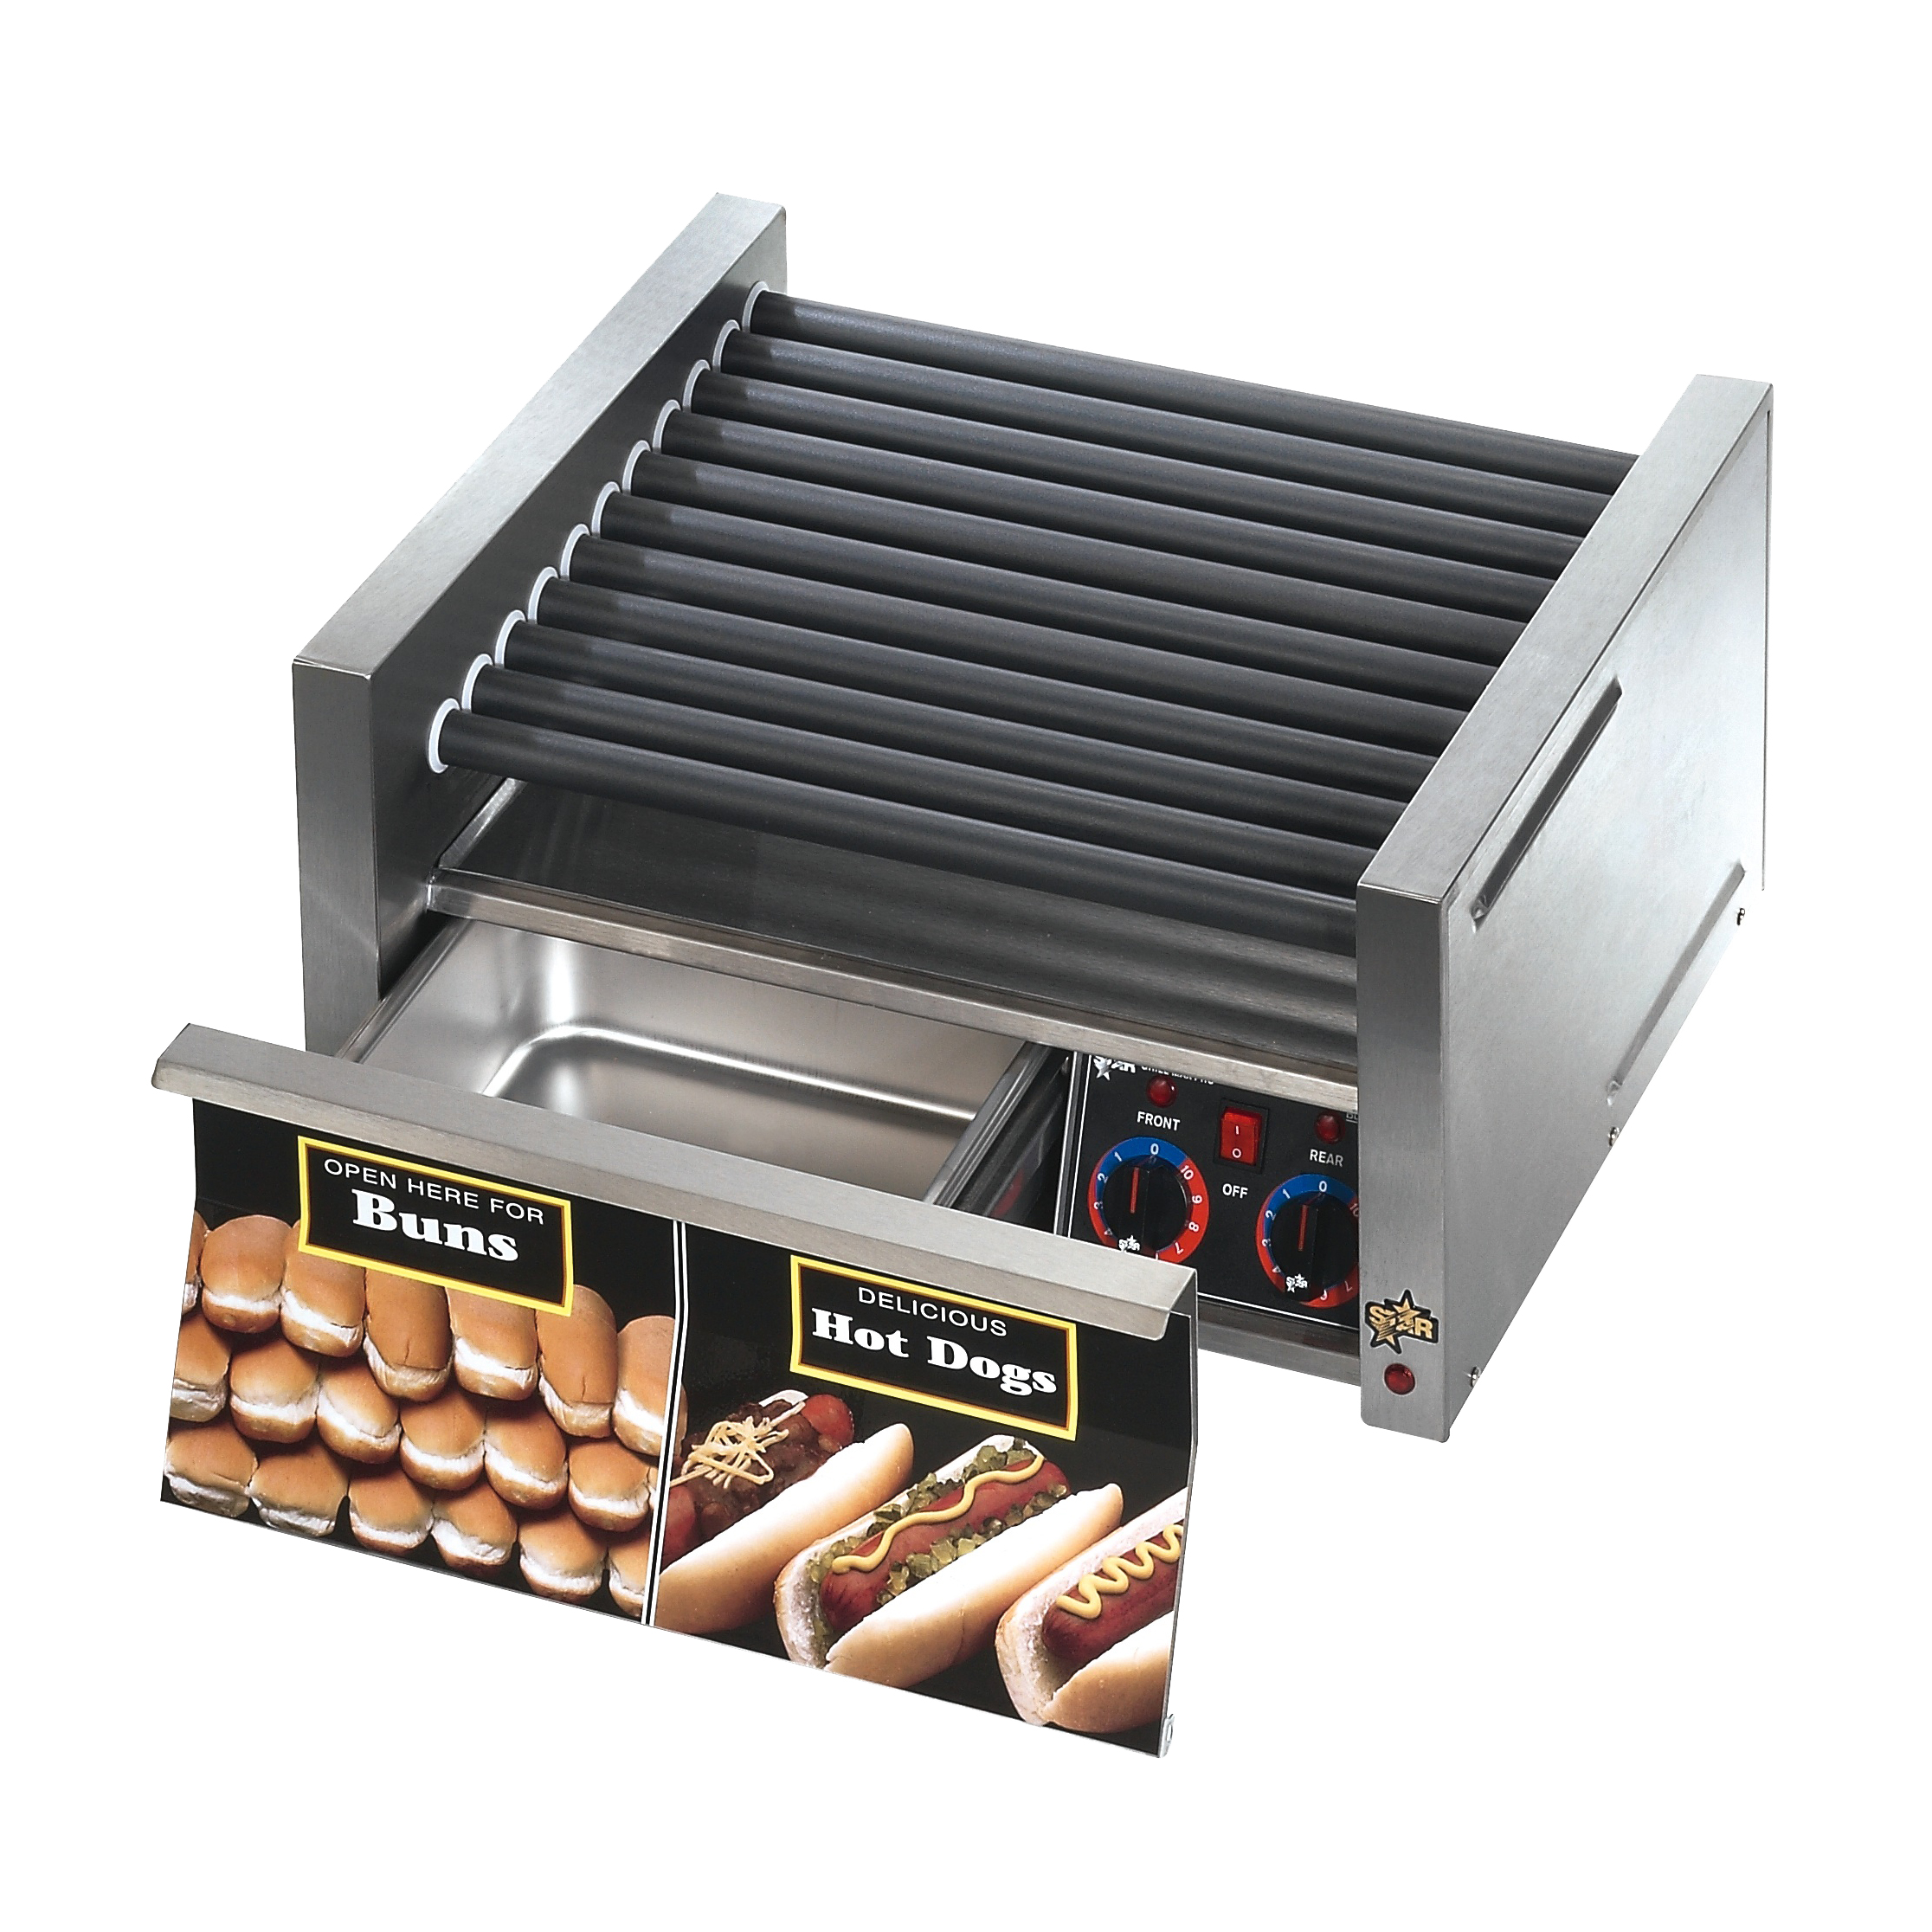 Star 50STBD hot dog grill